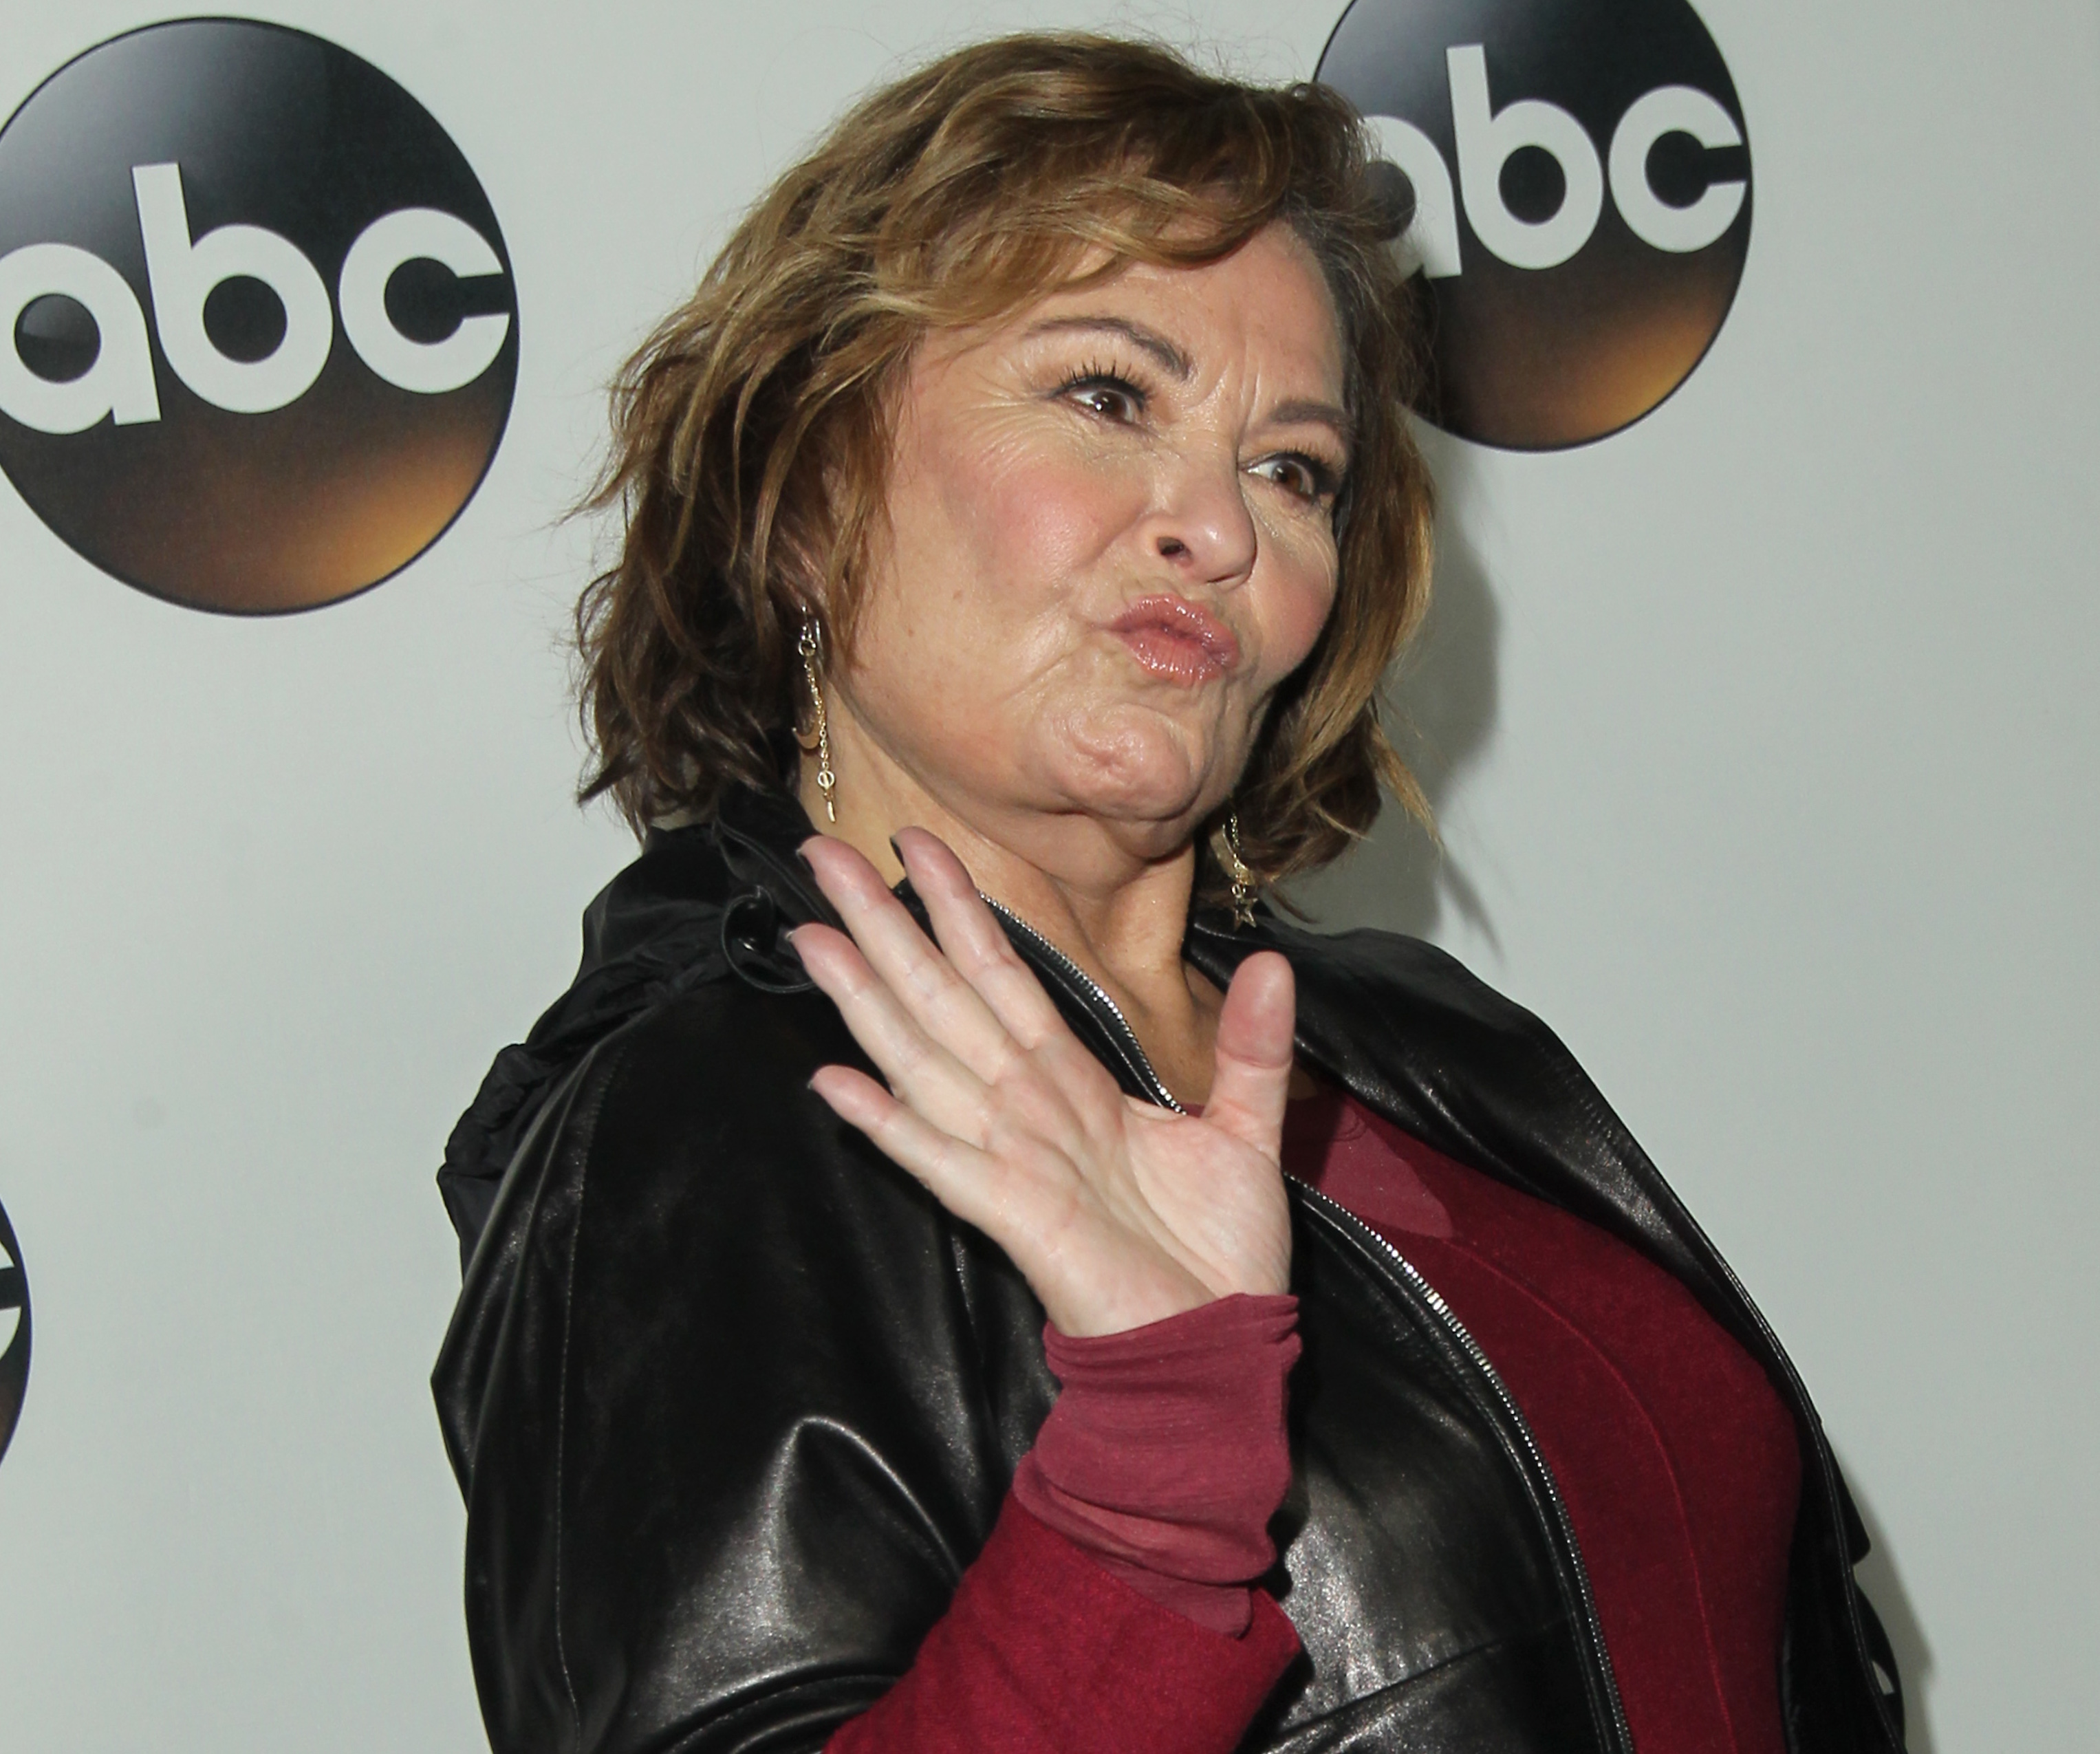 Stars, including Roseanne Barr's colleagues, are speaking out on social media about ABC's move to cancel the show. (Photo: WENN)